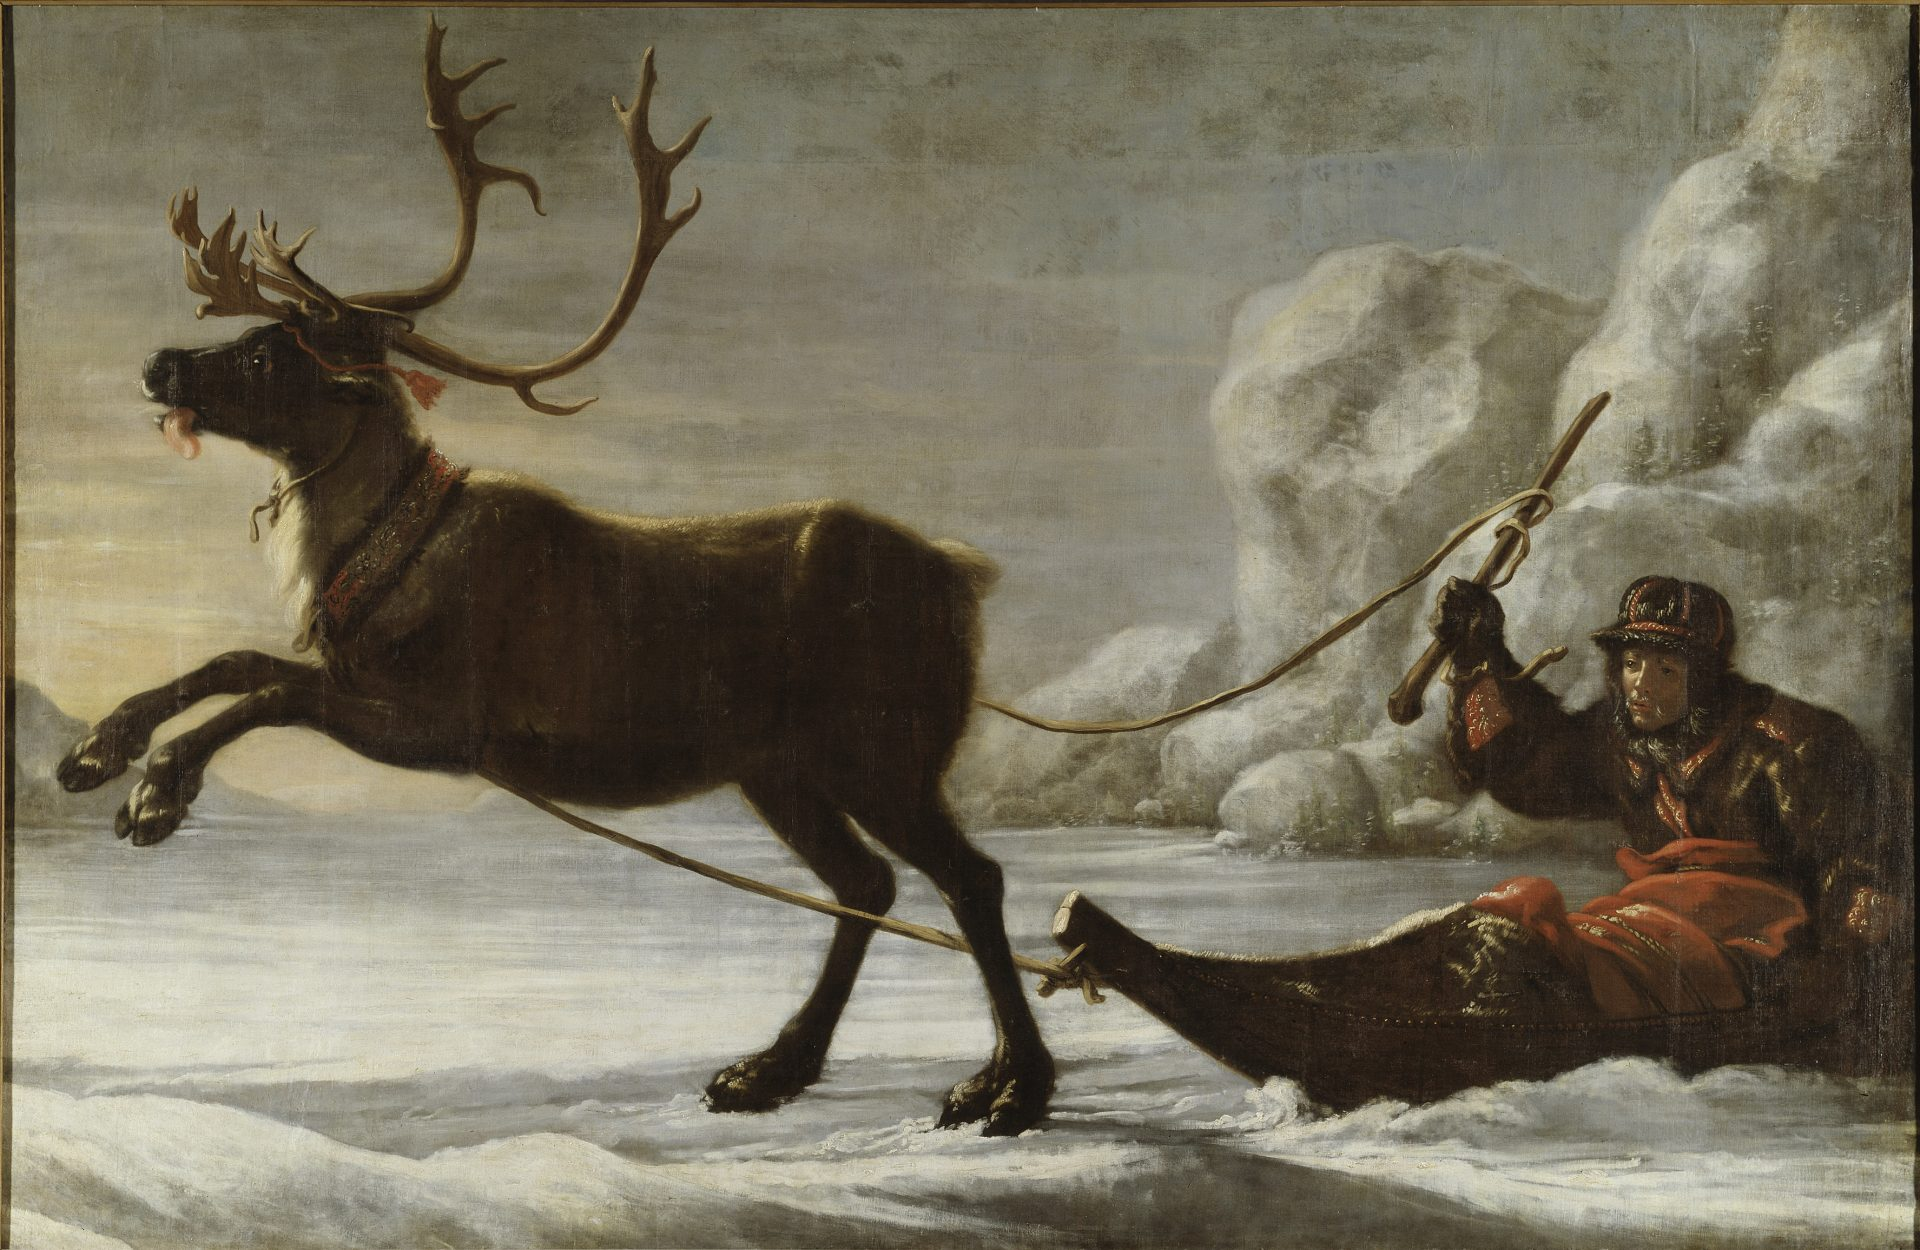 Oil painting of a sami in a sled driven by a reindeer,